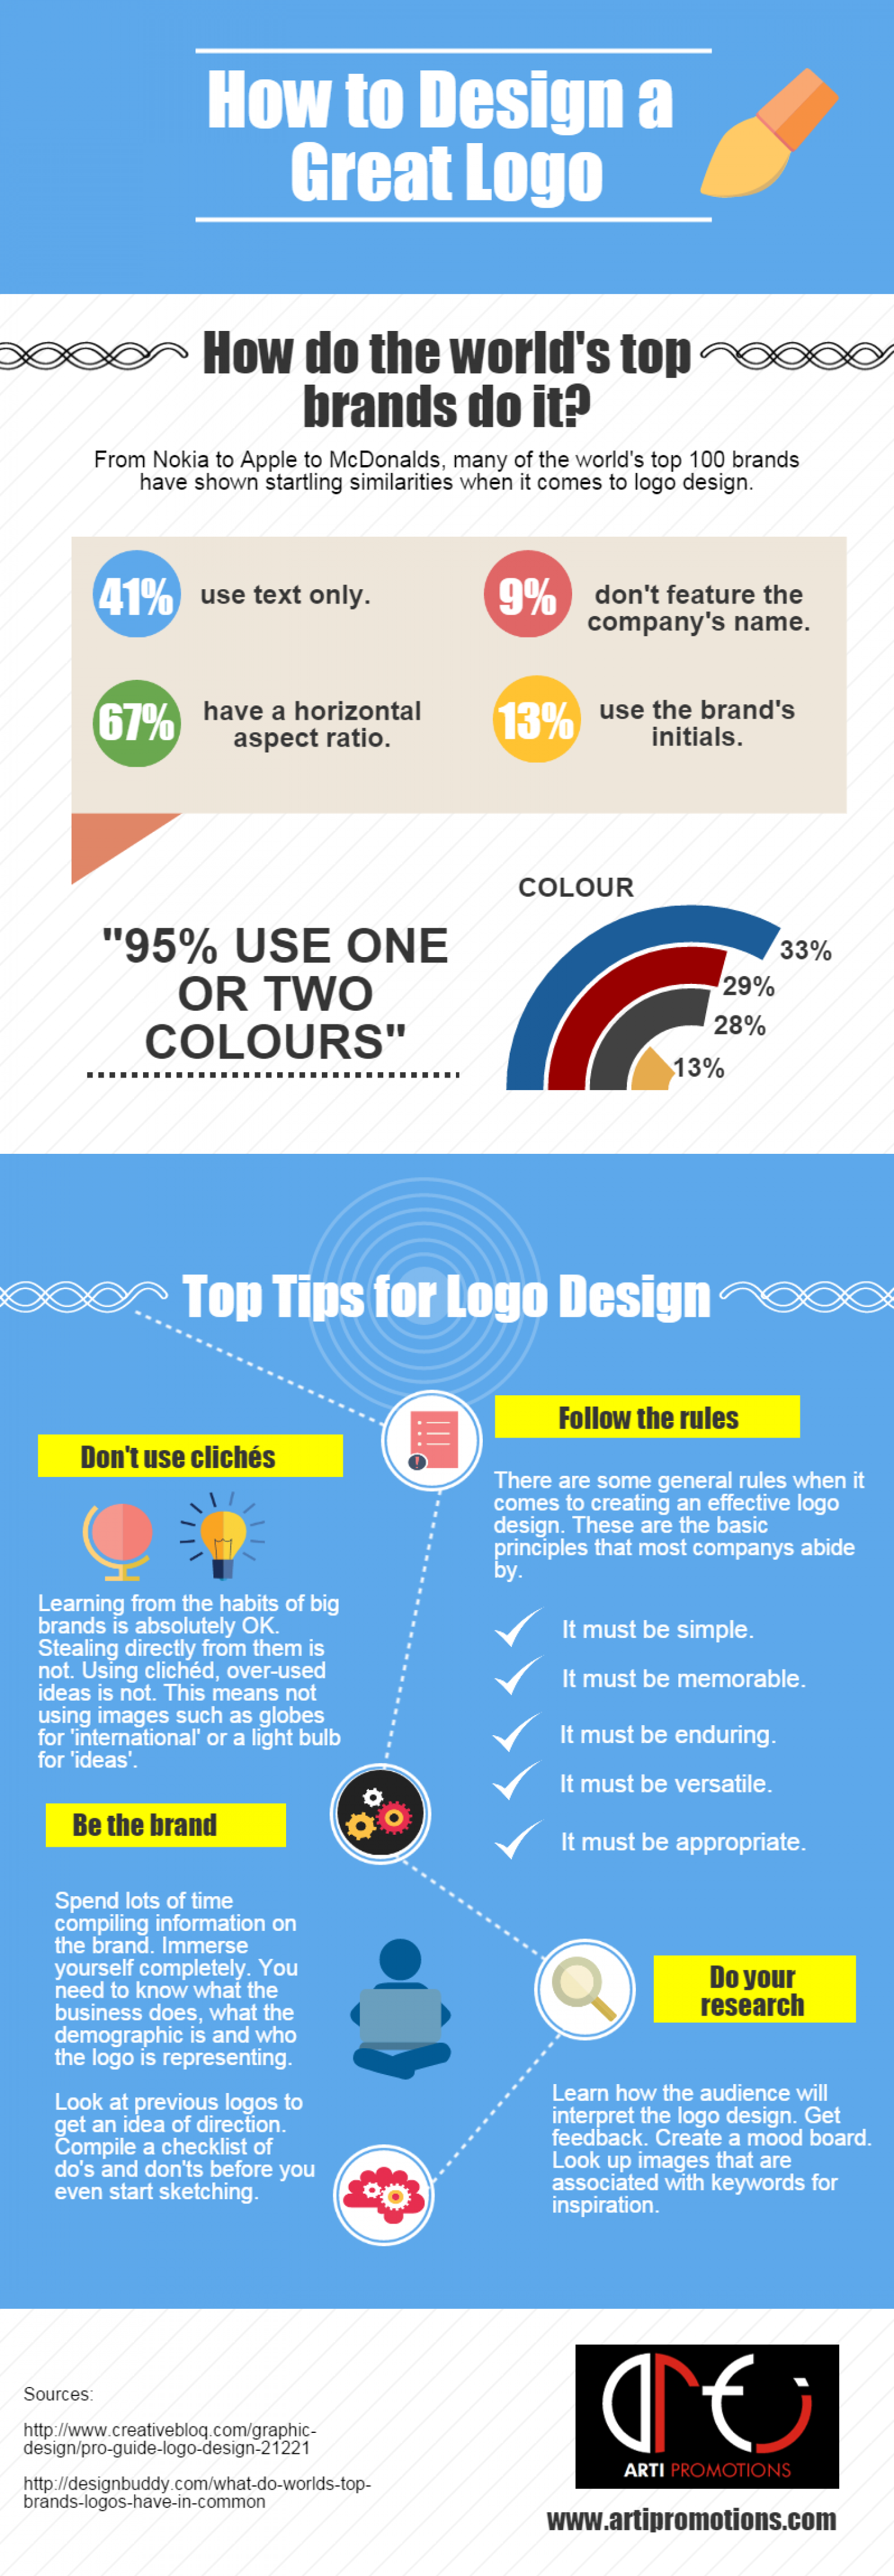 How to Design a Great Logo Infographic